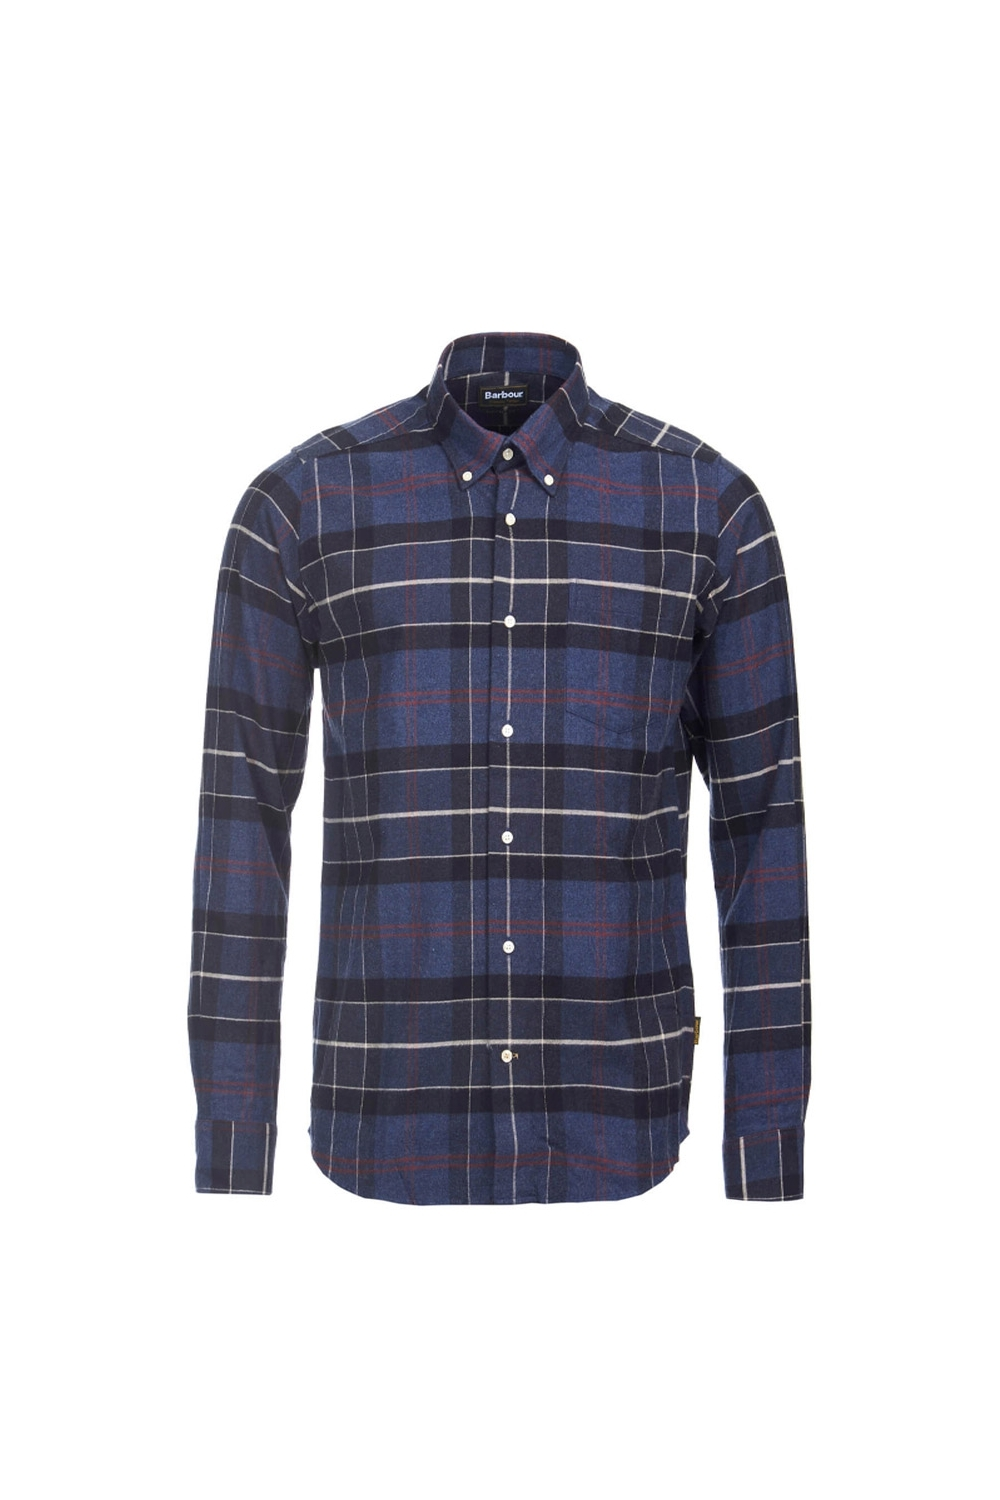 3a91af29e5f10 Barbour Barbour Lustleigh Long Sleeve Tailored Fit Shirt Navy Multi Check